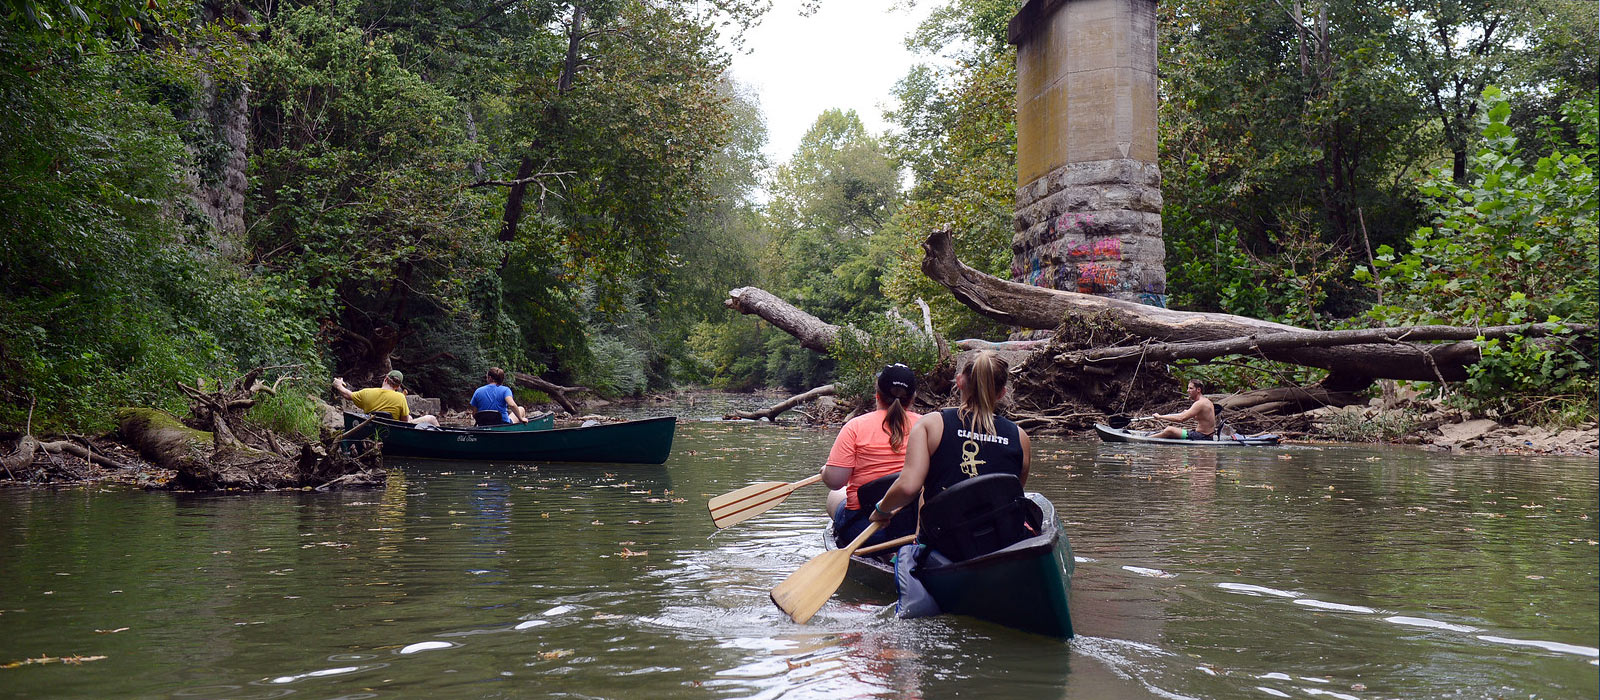 Students Participate in Community Clean-Up Effort via Canoes